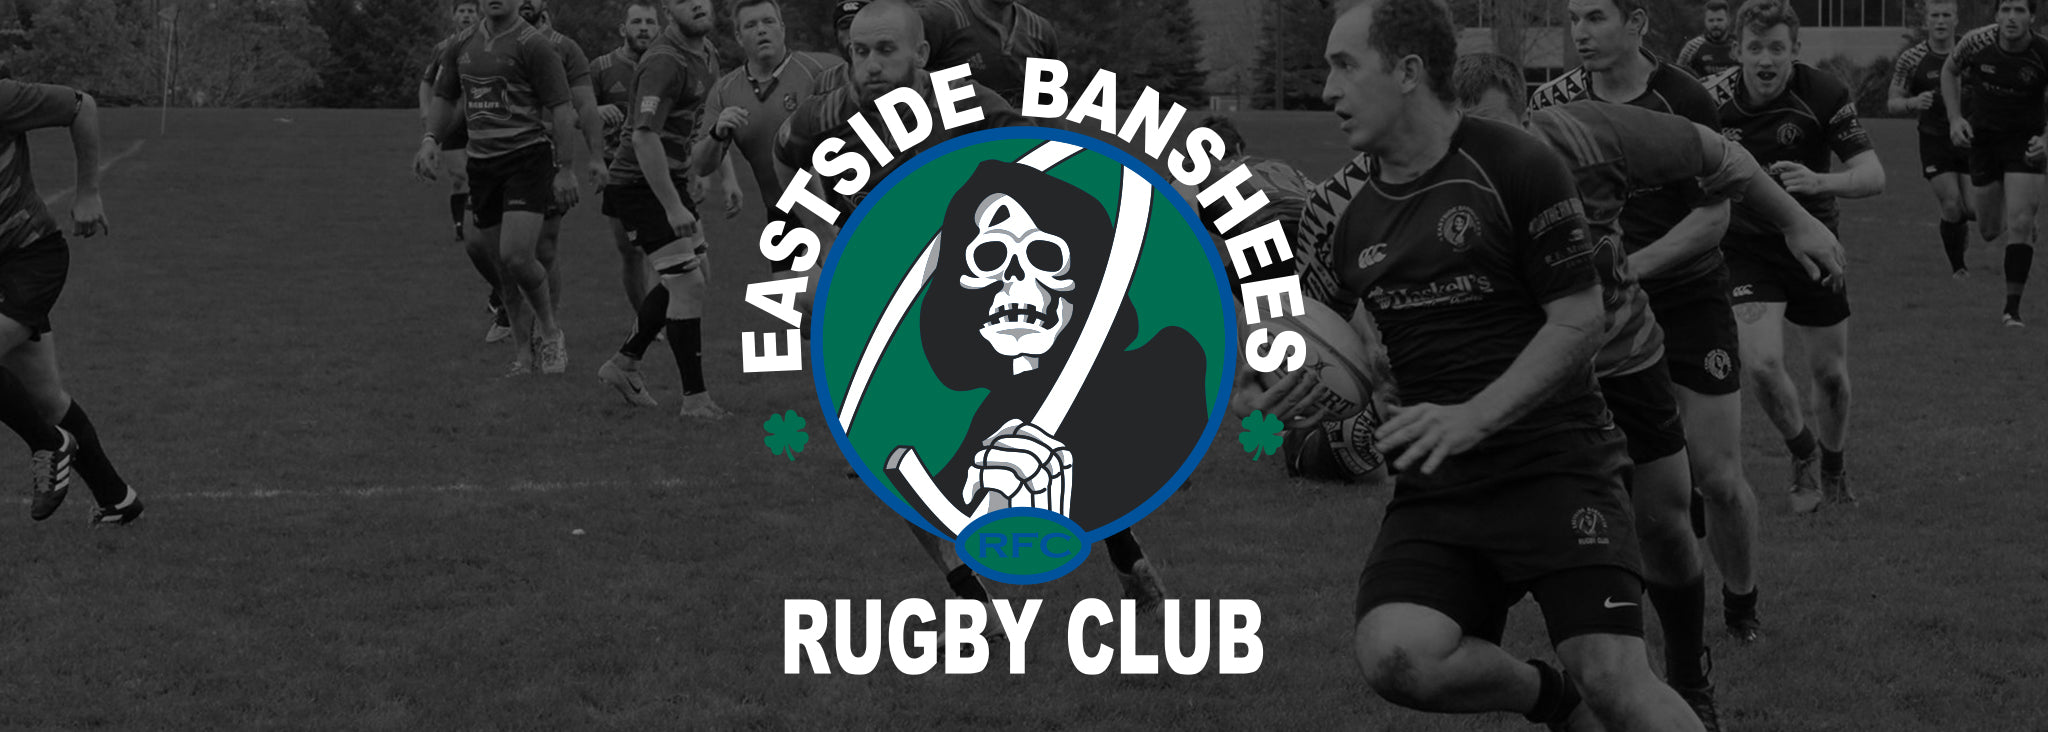 Eastside Banshees RFC